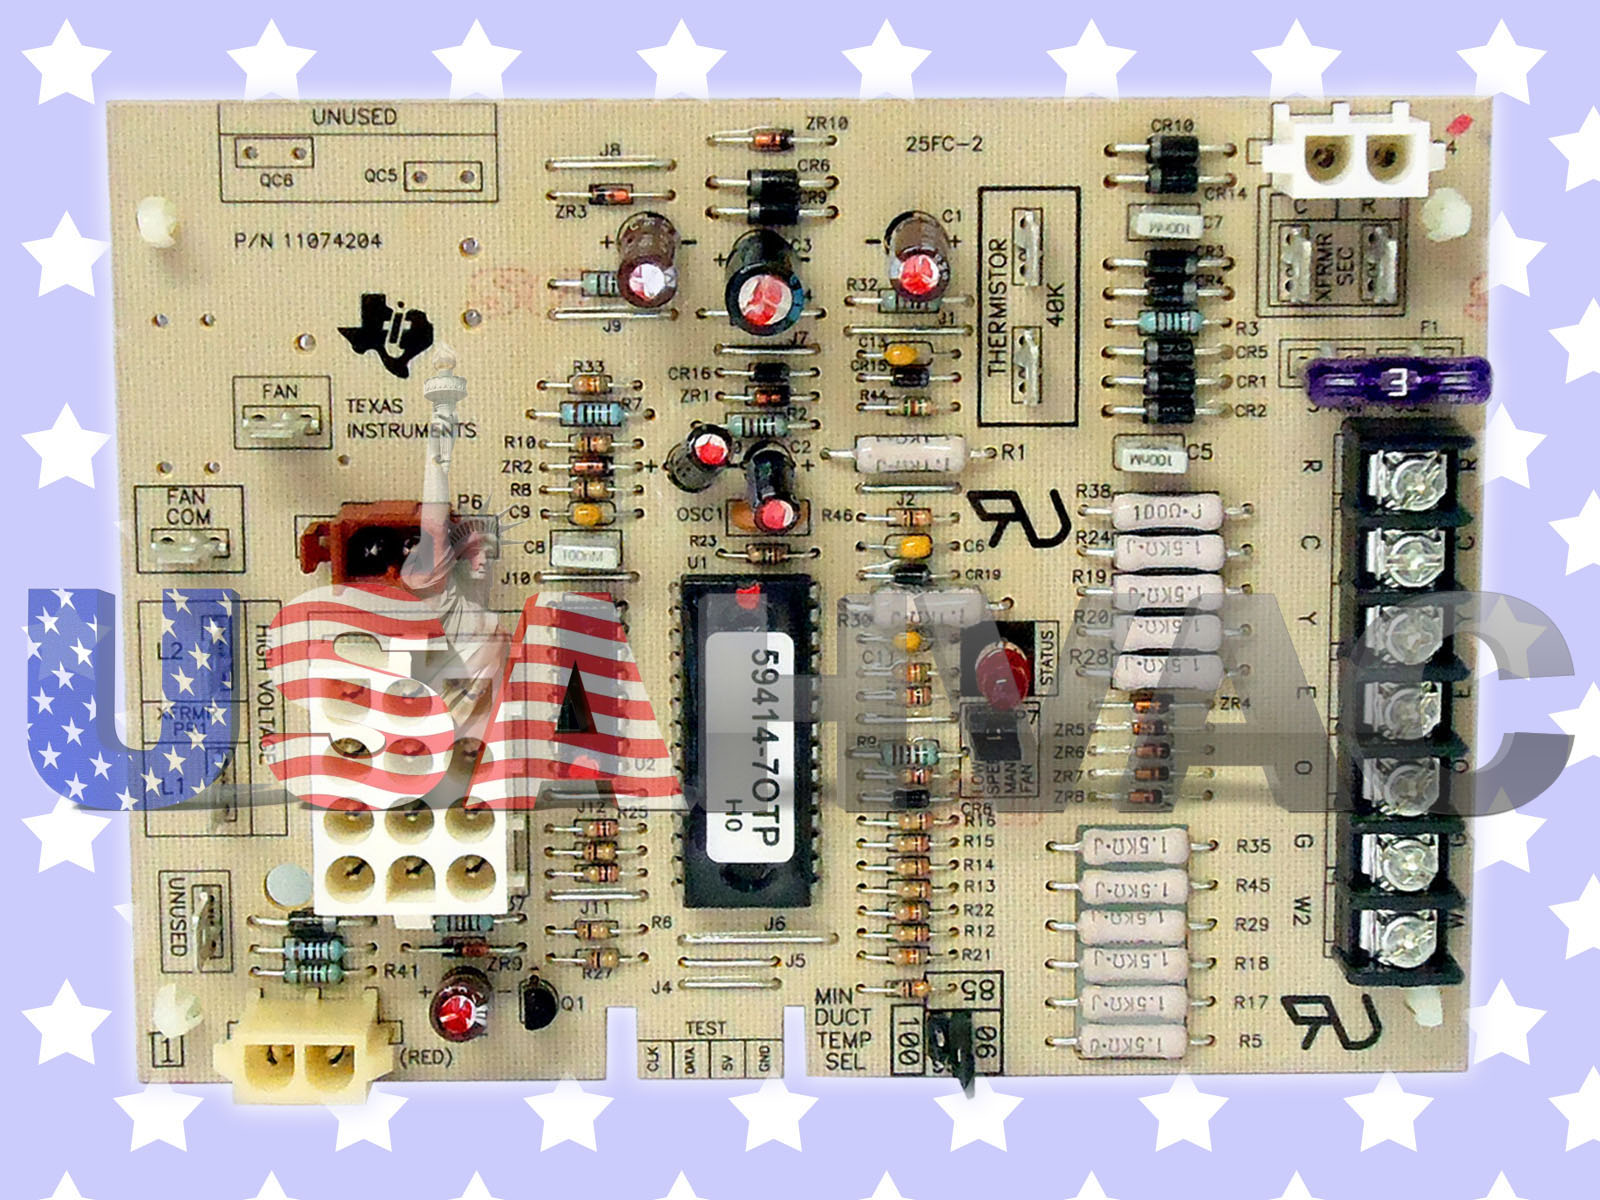 armstrong furnace control board wiring diagram cole hersee solenoid janitrol goodman amana 11074204